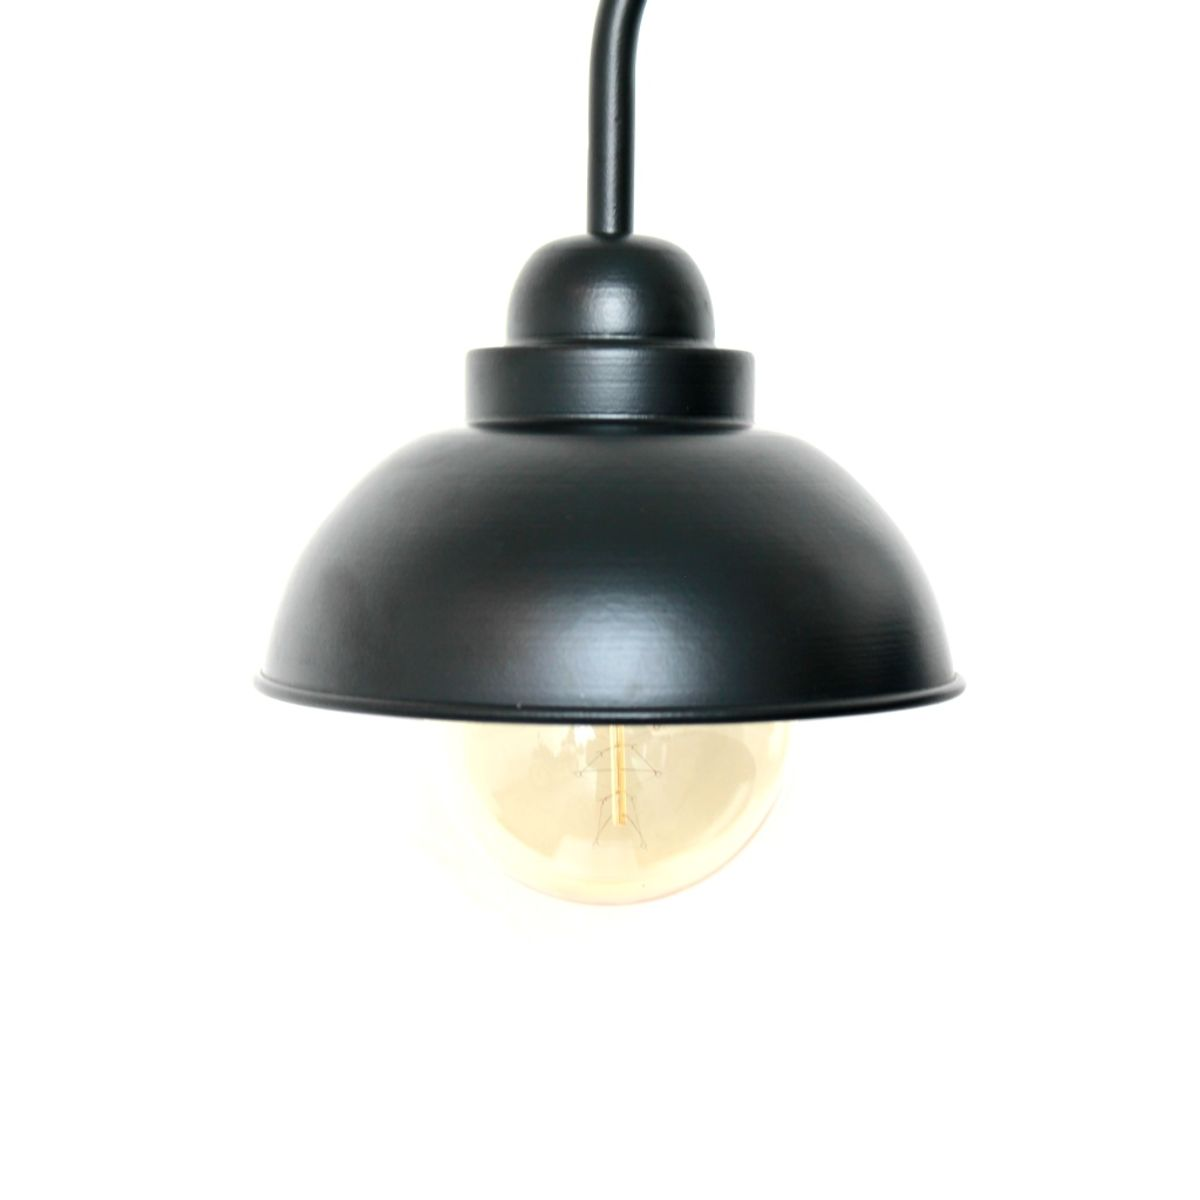 Marical Black Dome Wall Light